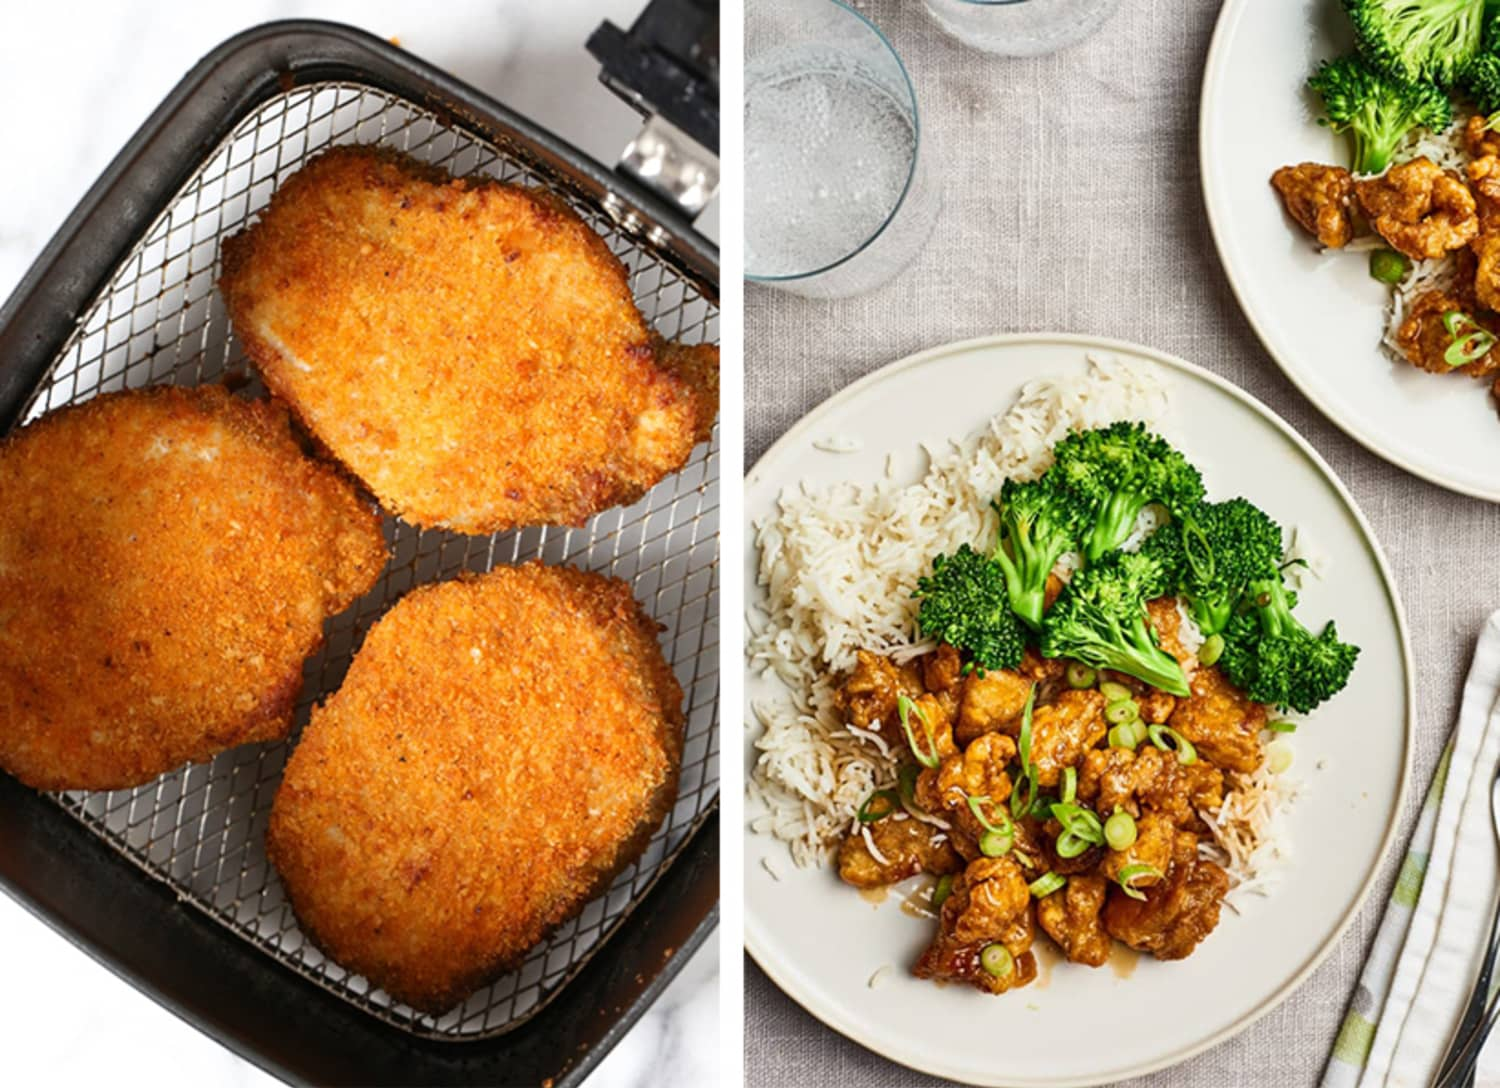 The Top 10 Air Fryer Recipes for Winter